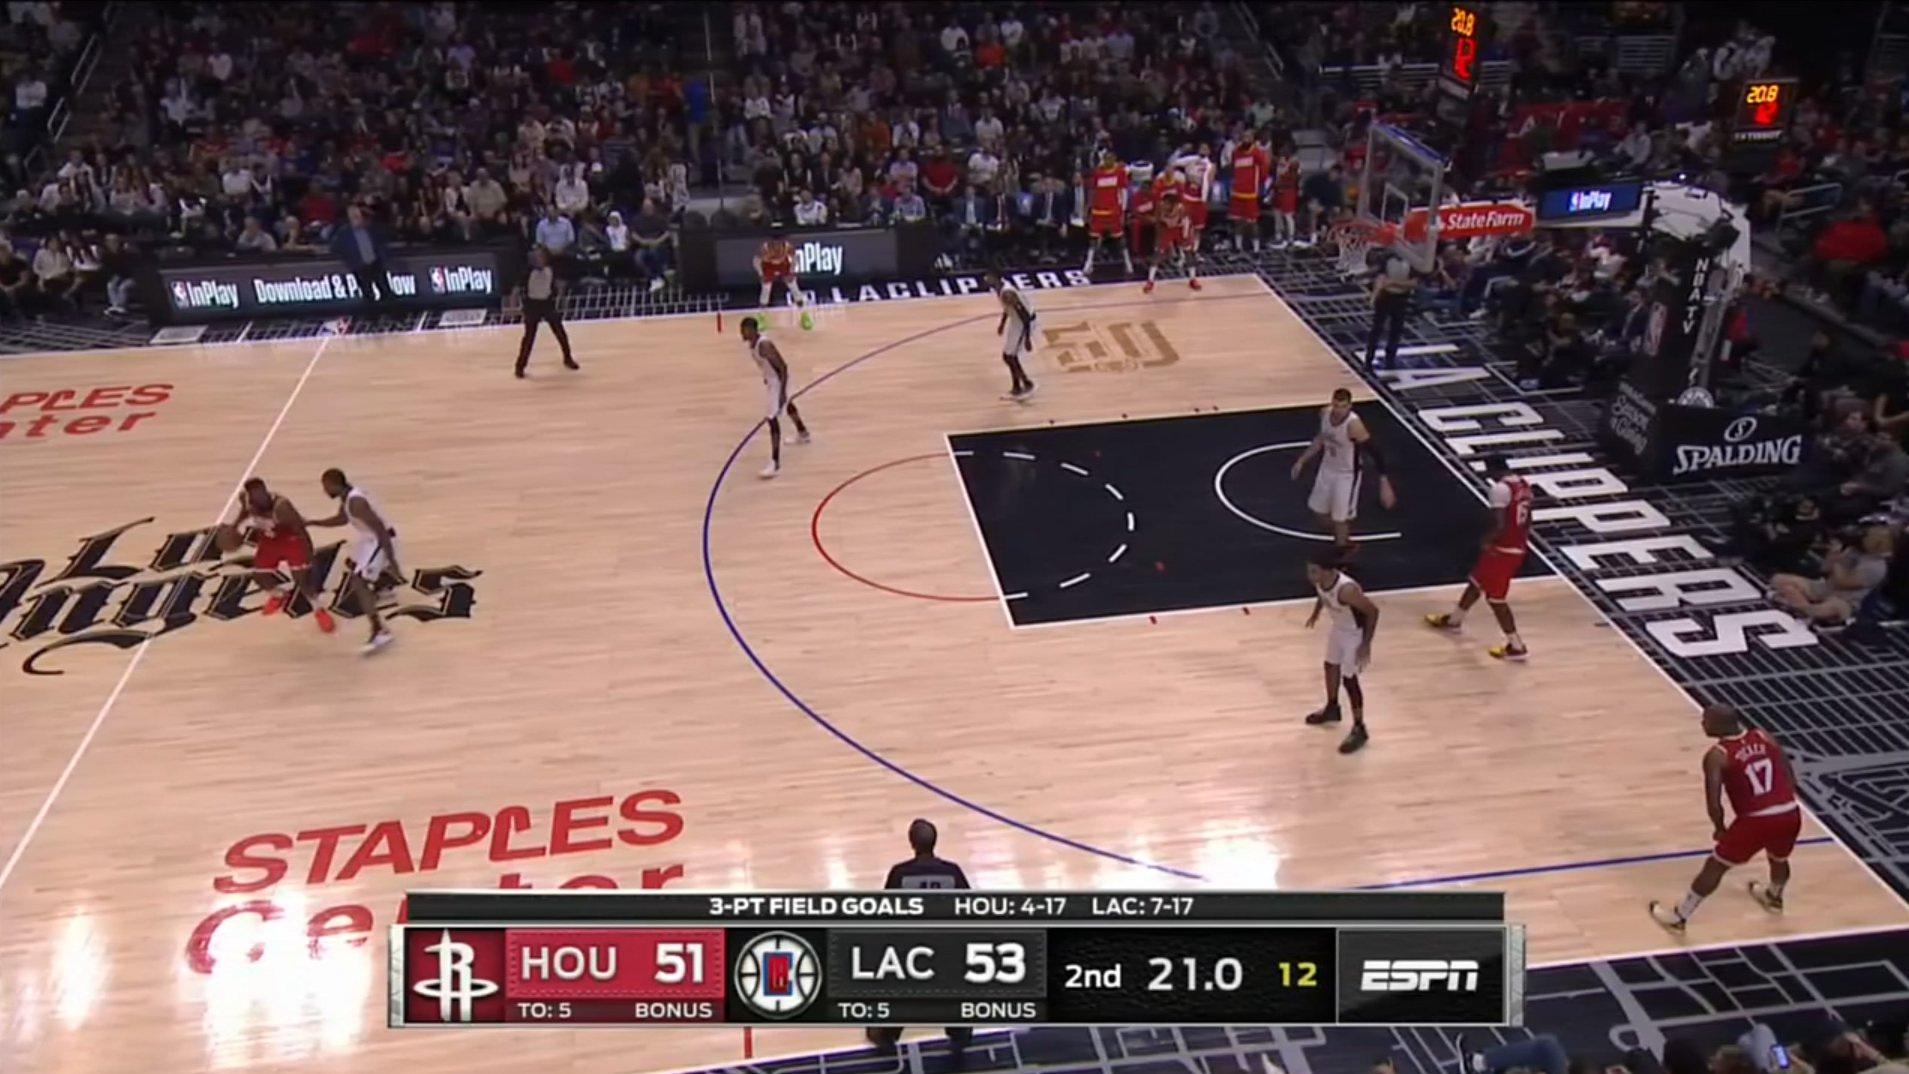 Espn Viewers Aren T Enjoying An Elevated Camera Angle For Rockets Clippers